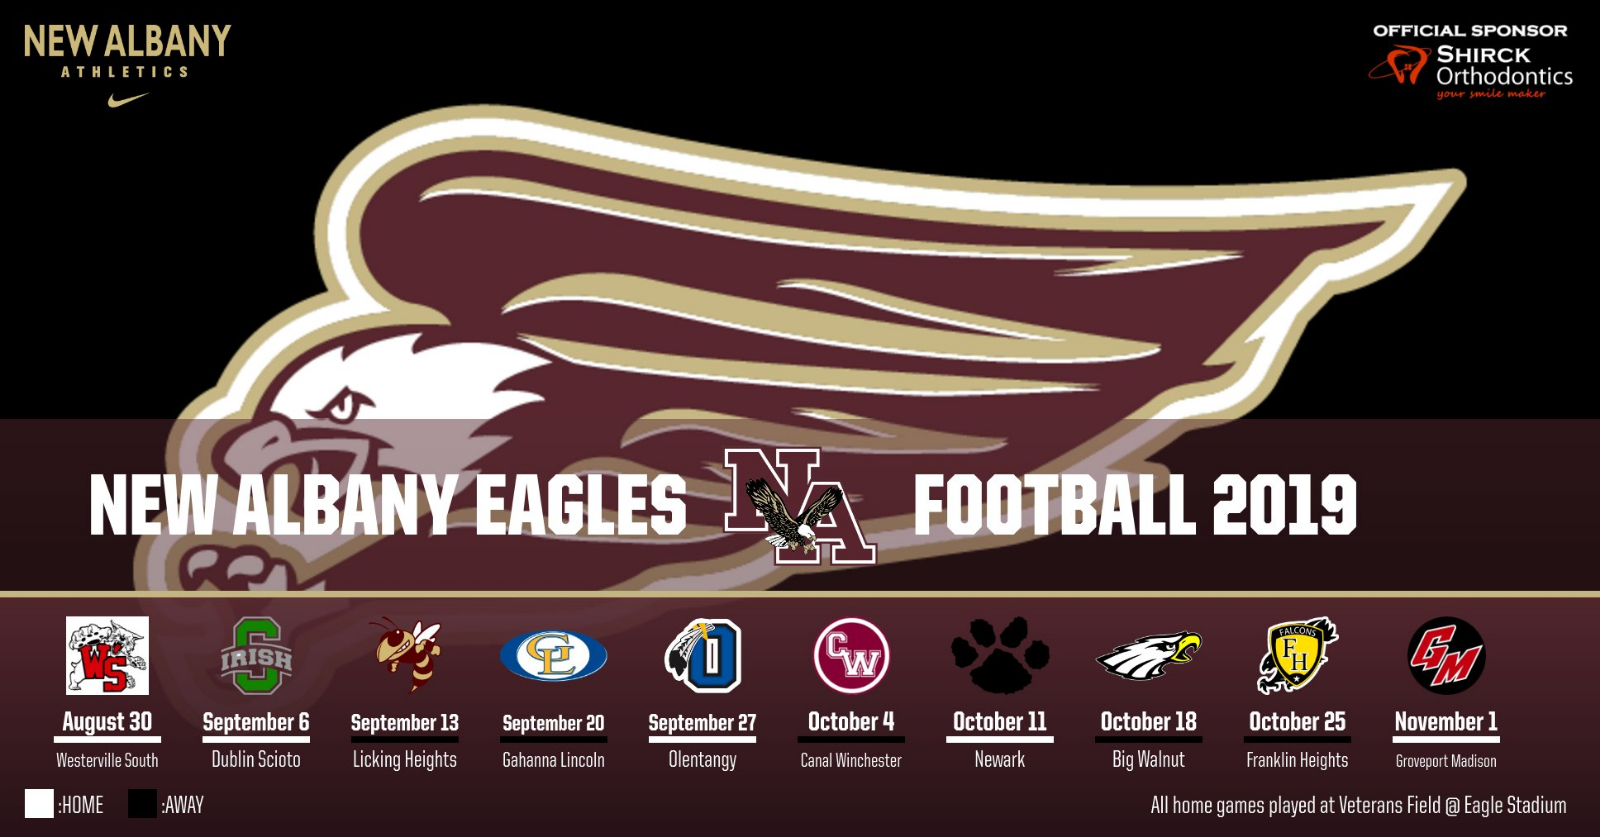 2019 New Albany Football Schedule